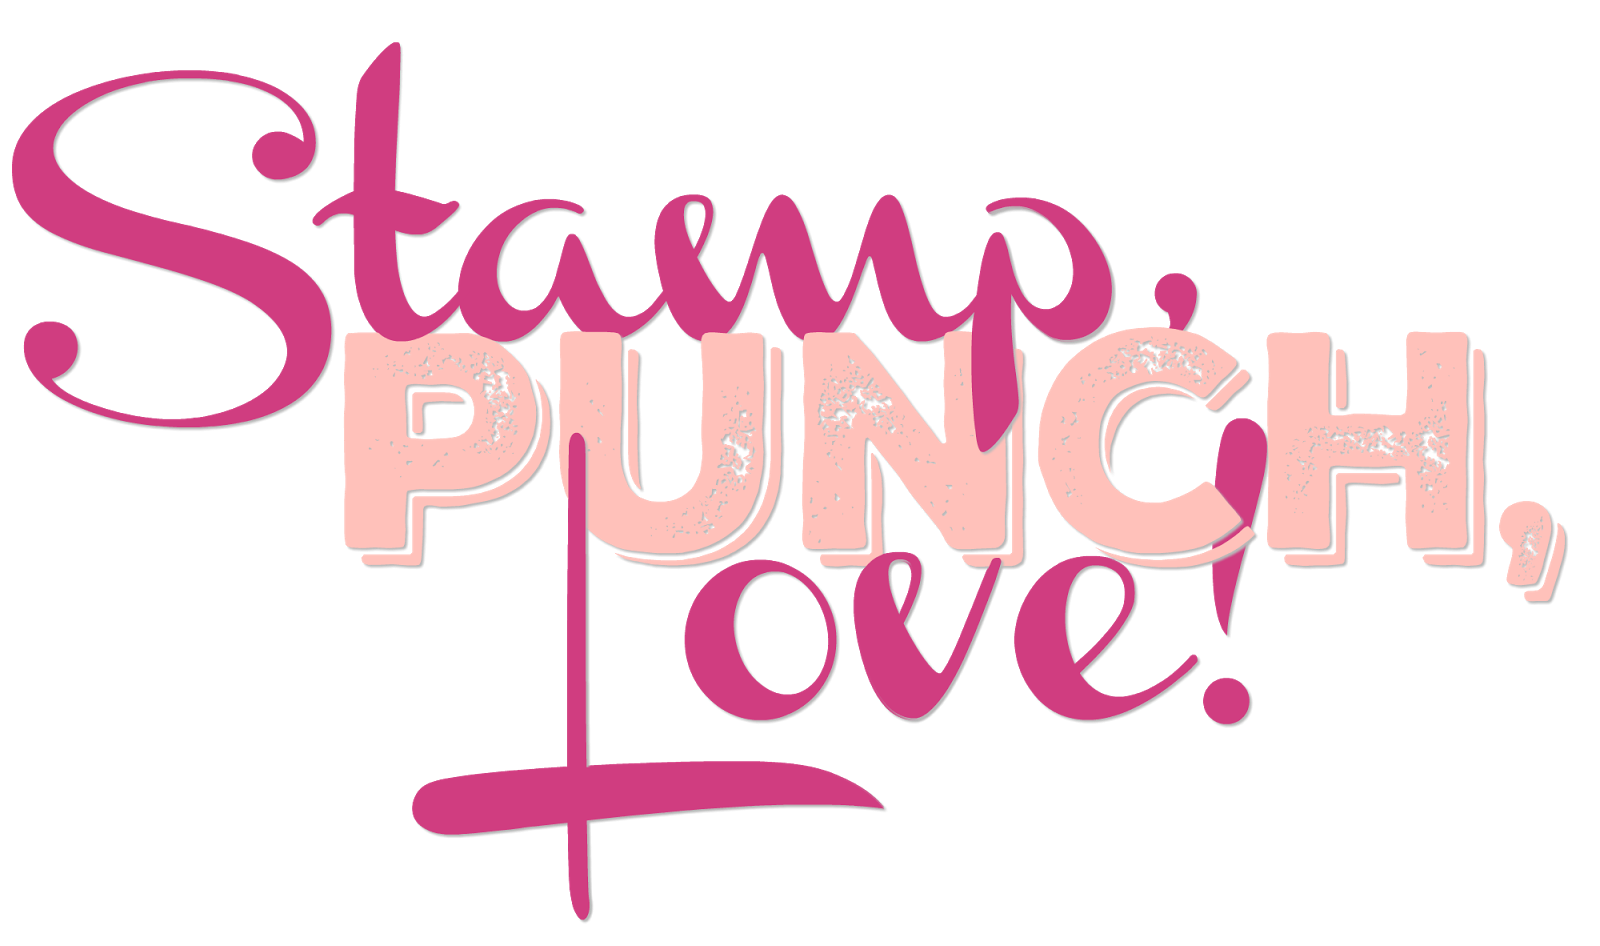 Stamp, Punch, Love!